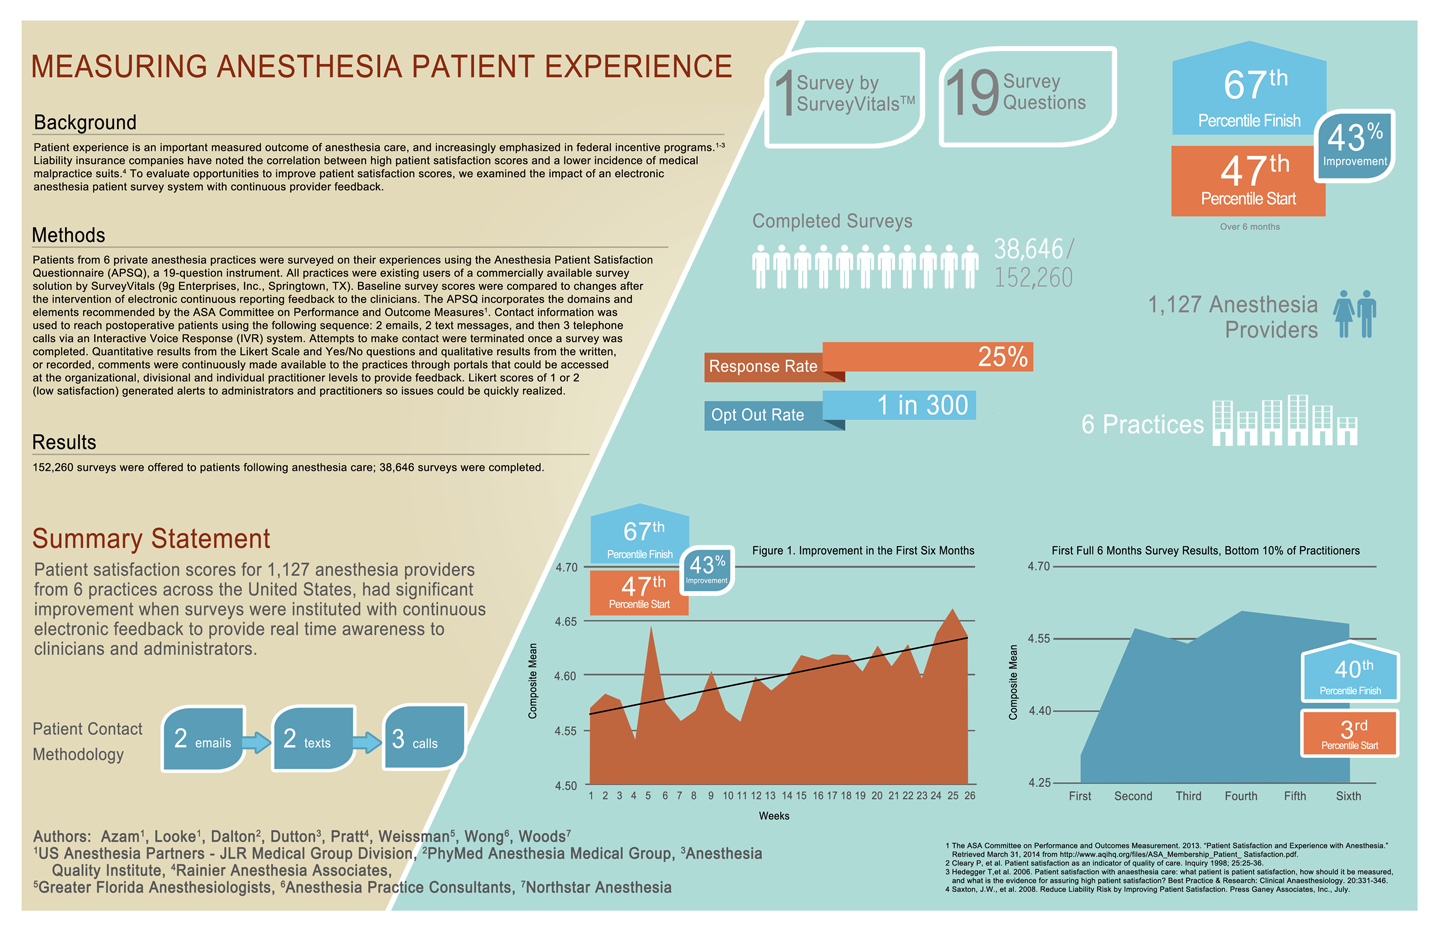 Measuring Anesthesia Patient Experience